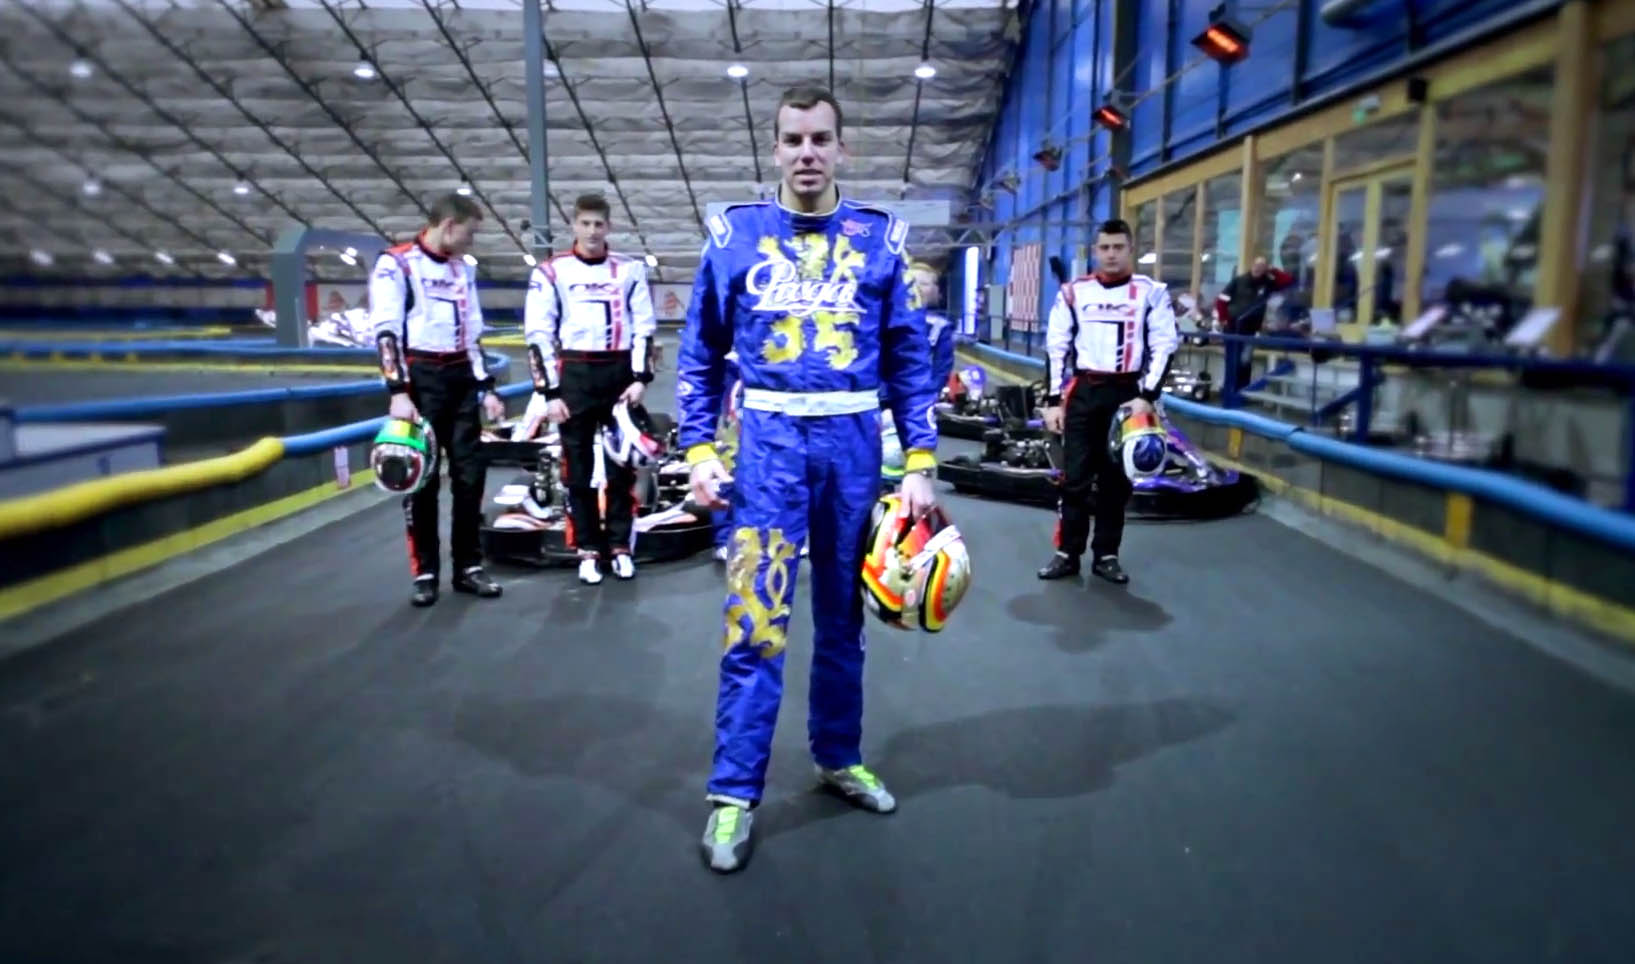 VIDEO: Rental Kart Crash Race! - Professional Drivers fight at Praga Arena